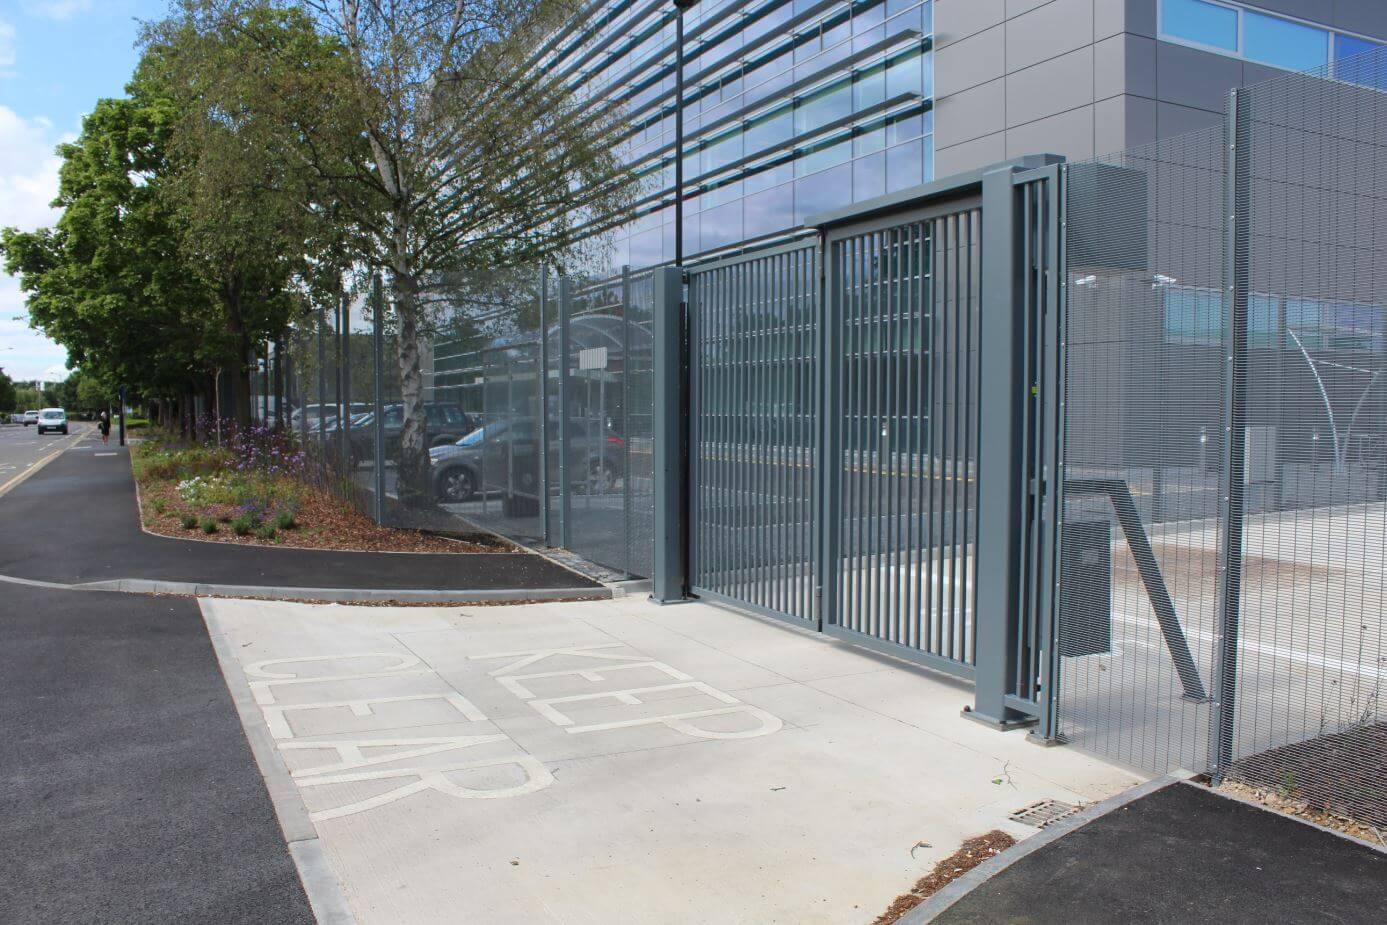 Data Centre chooses Procter Contracts to secure high security perimeter